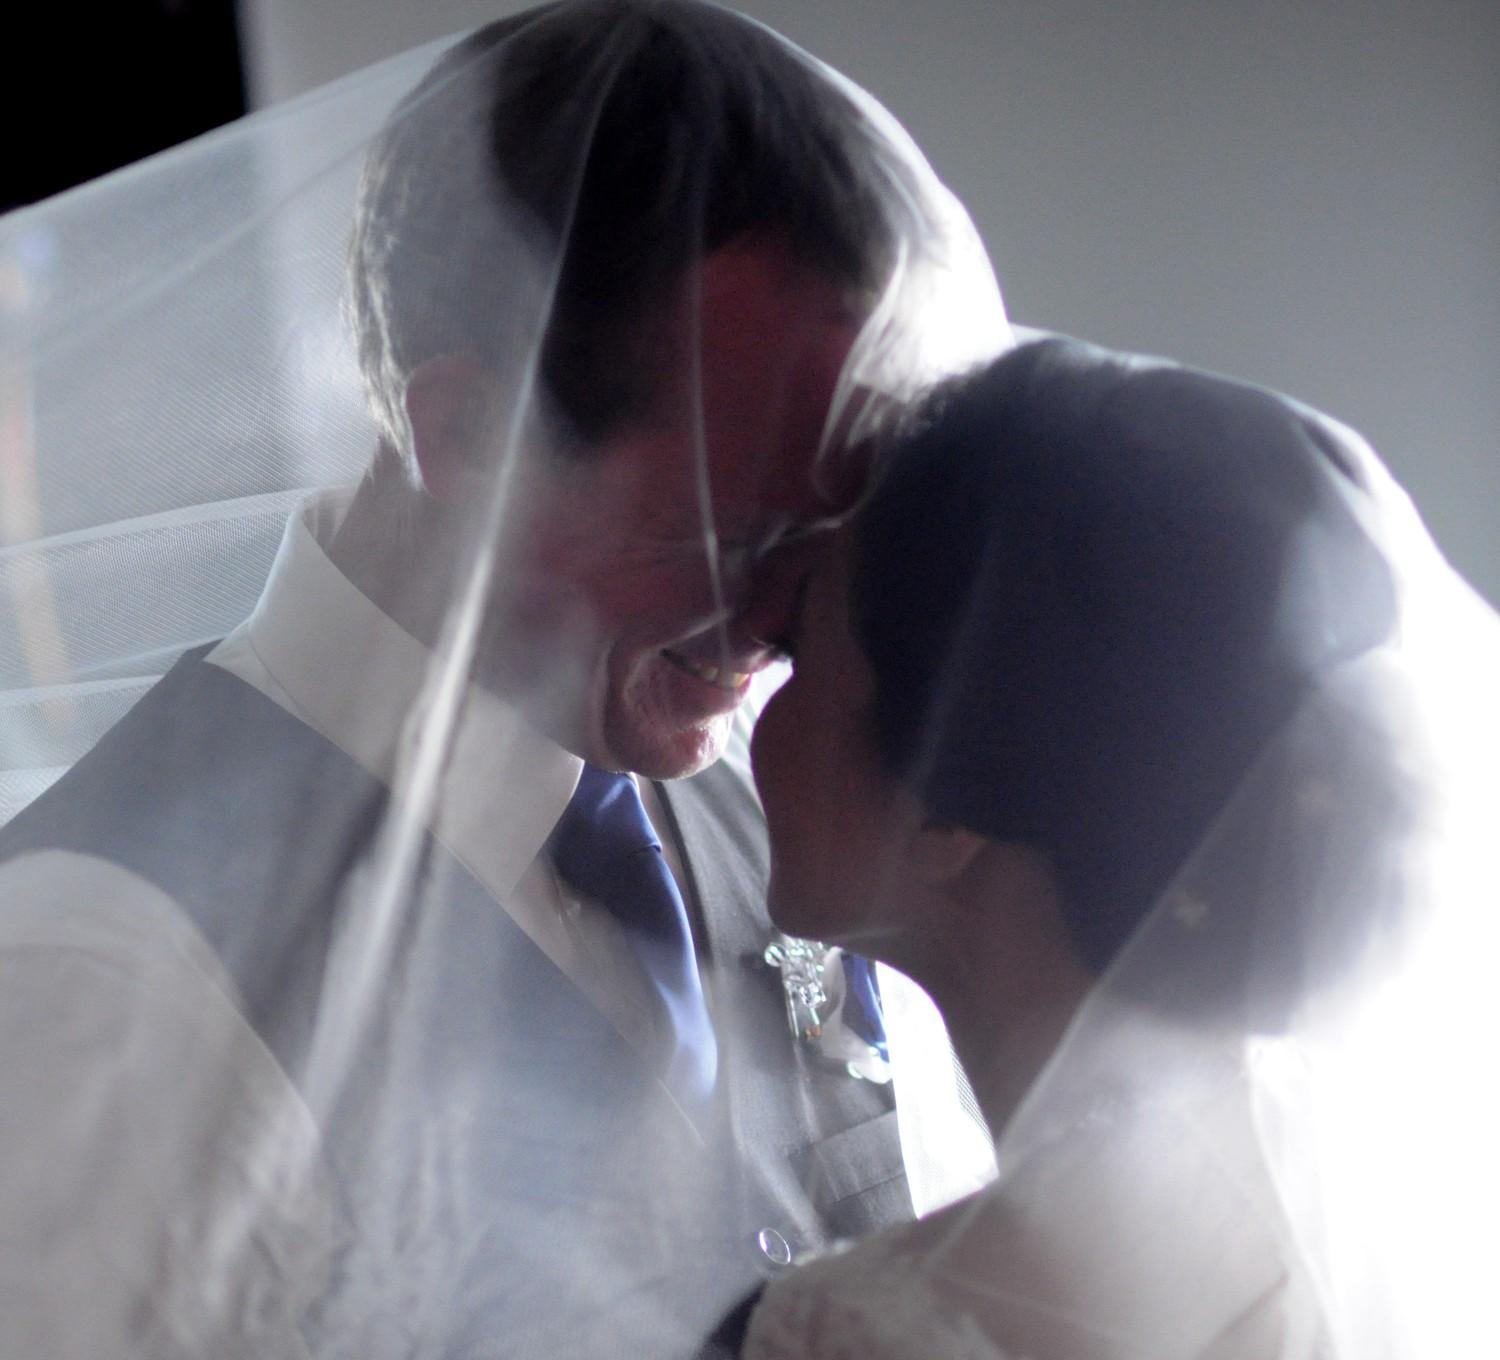 Australian Christian single marries beautiful Filipina who gazes at him with wedding veil covering them both